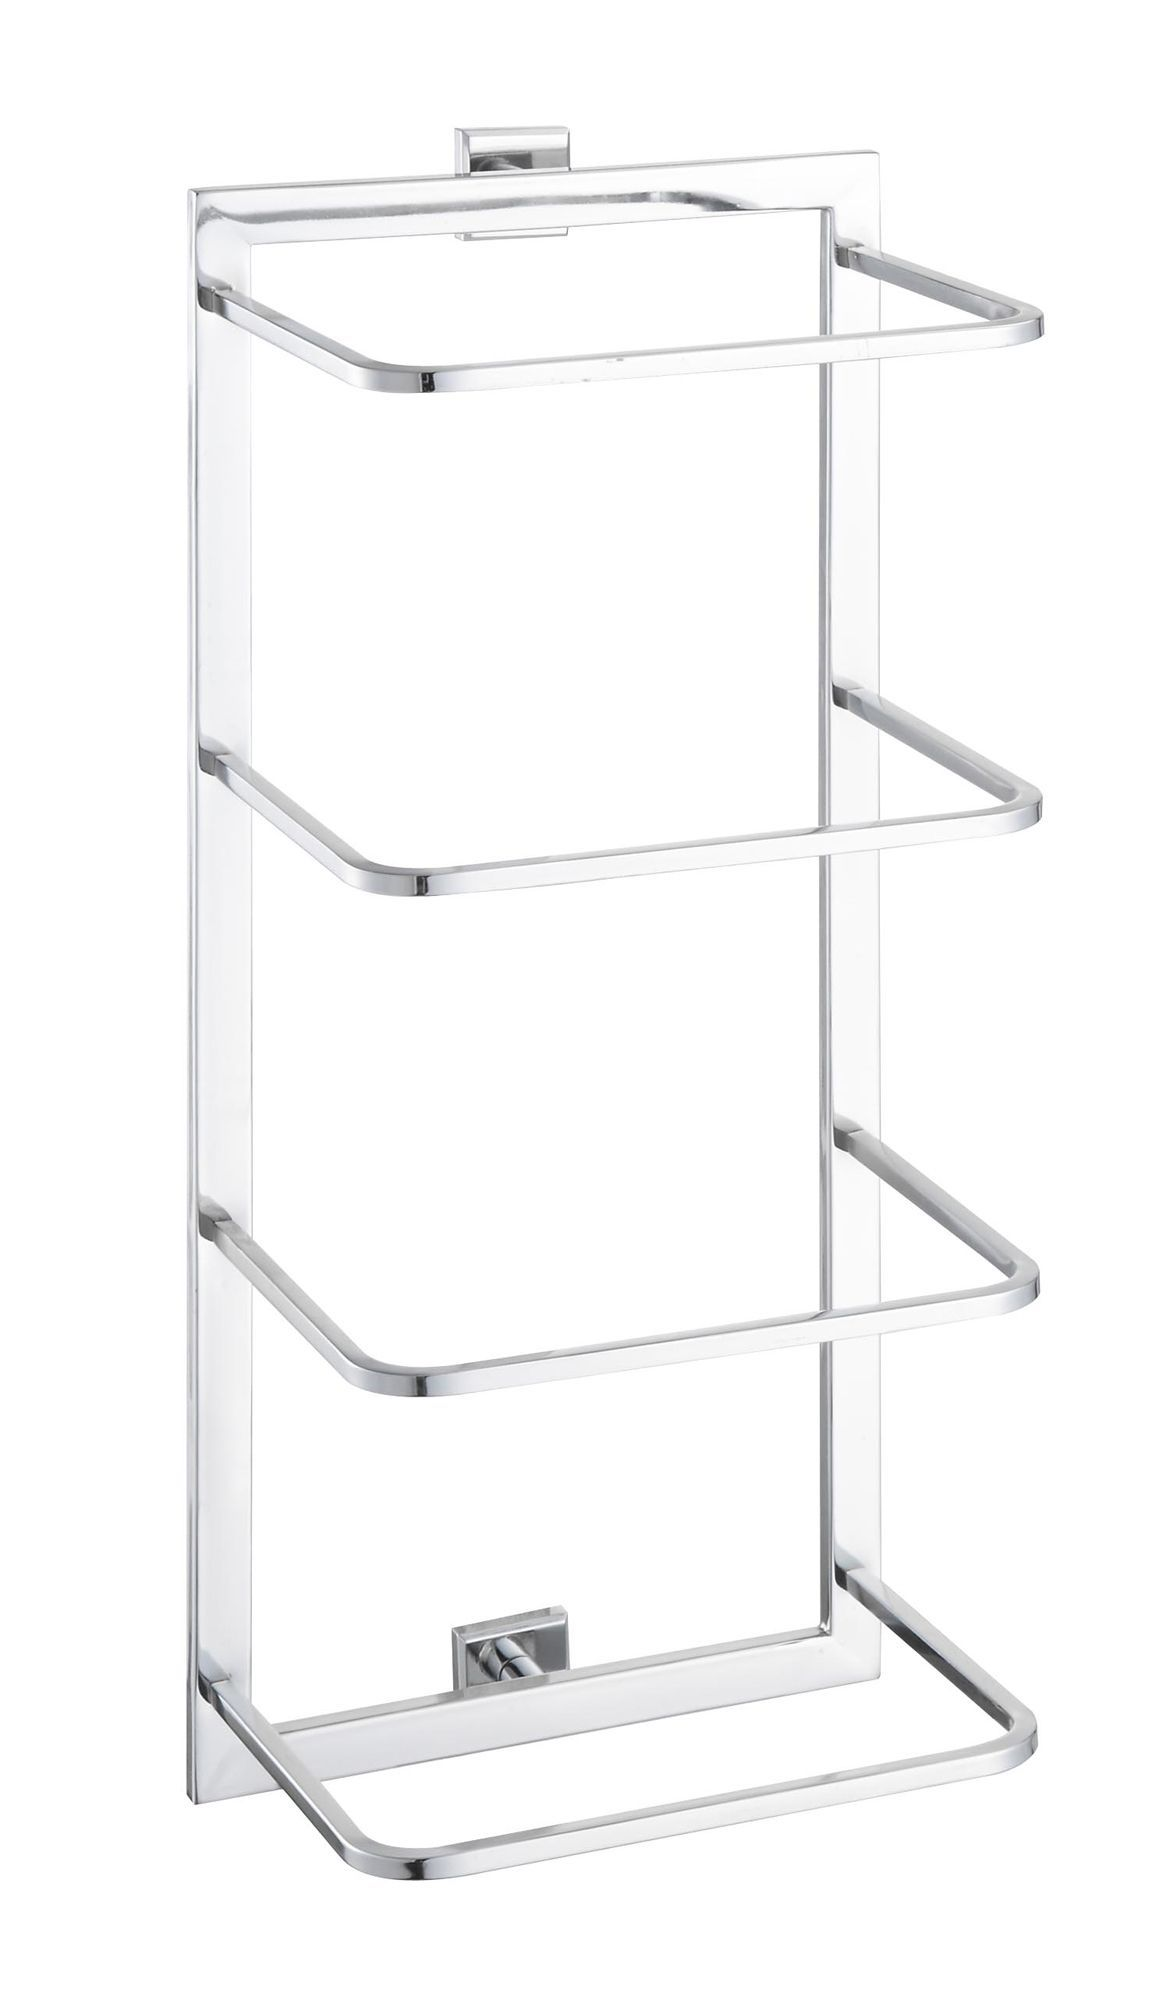 Cooke & Lewis Linear Chrome Effect Towel Holder, (w)245mm